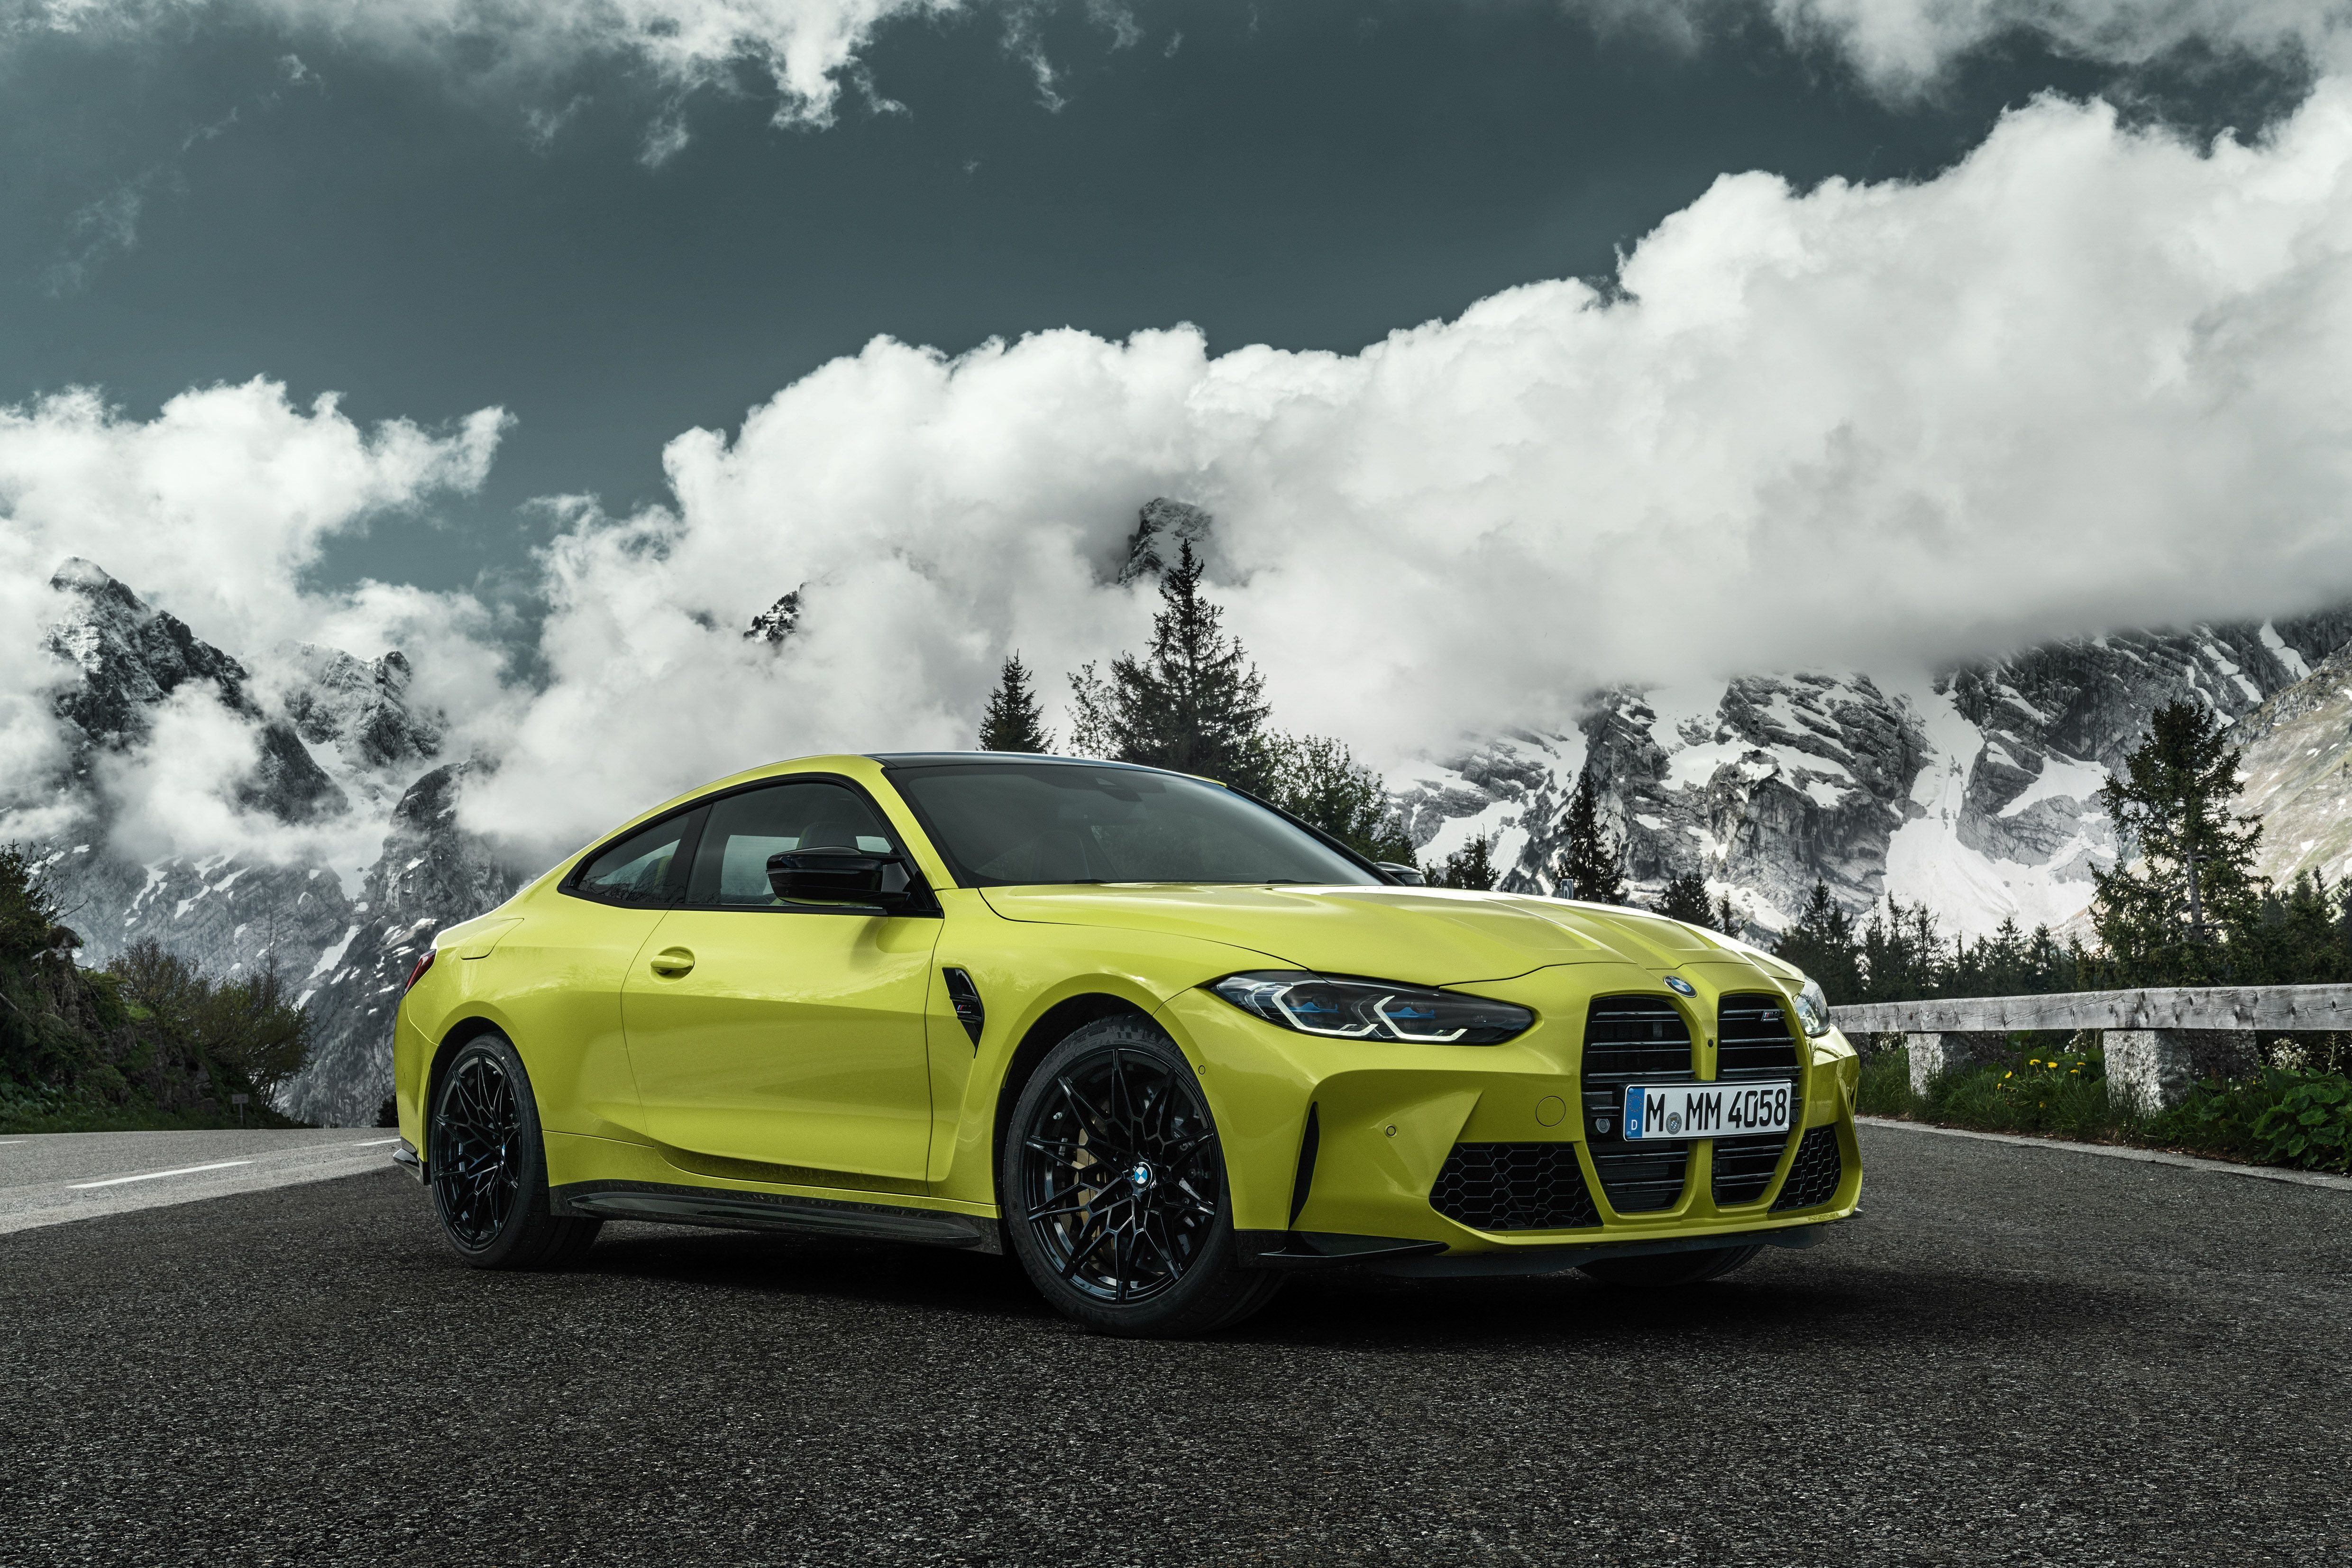 2021 Bmw M4 What We Know So Far